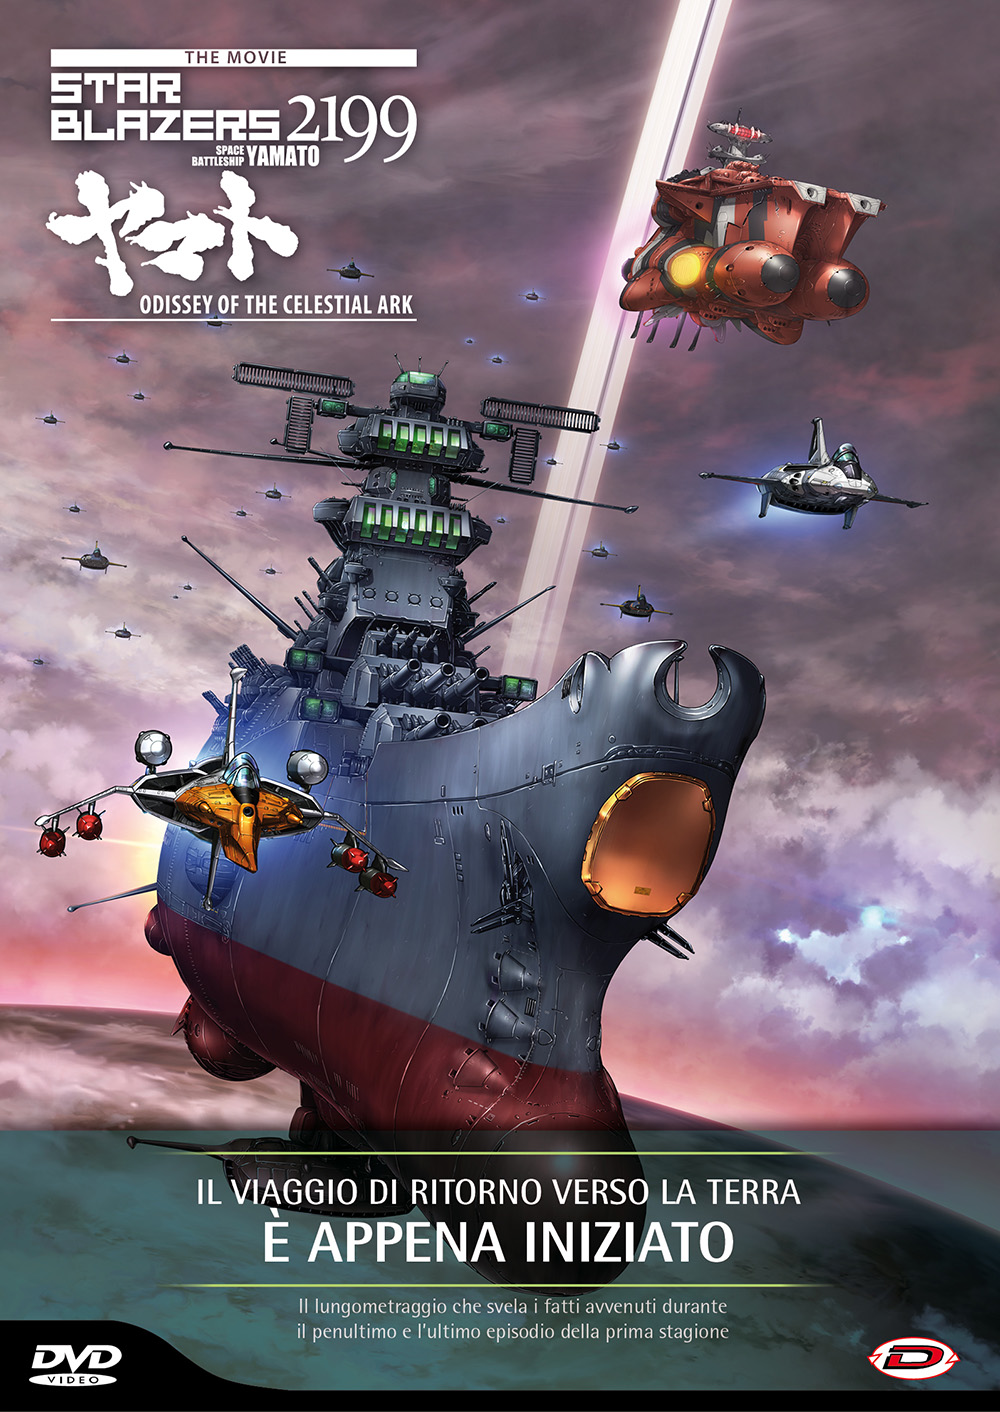 COF. STAR BLAZERS 2199 THE MOVIE - ODYSSEY OF THE CELESTIAL ARK (FIRST PRESS) (DVD)